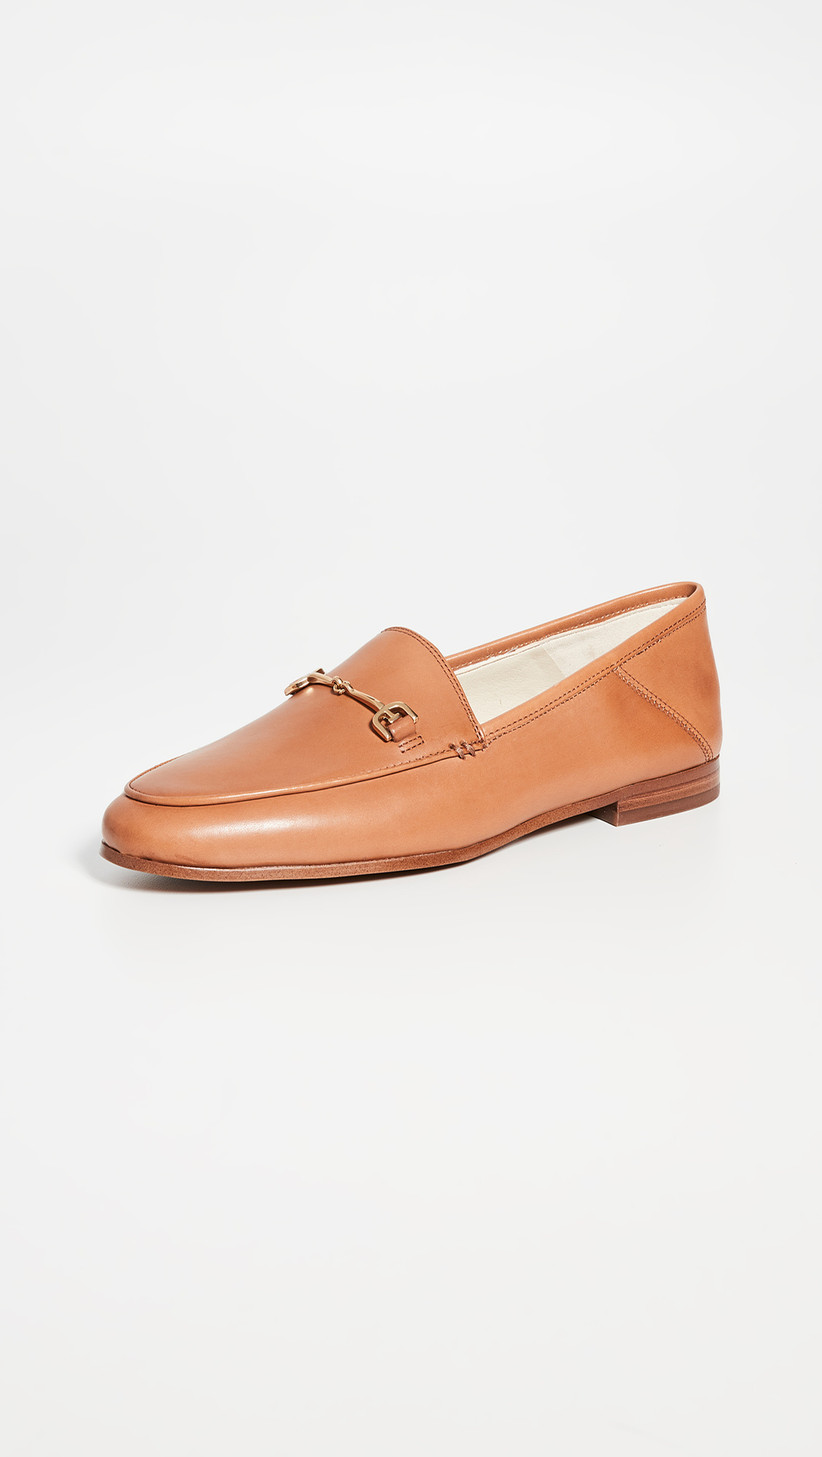 Wedding Guest Shoes light loafers